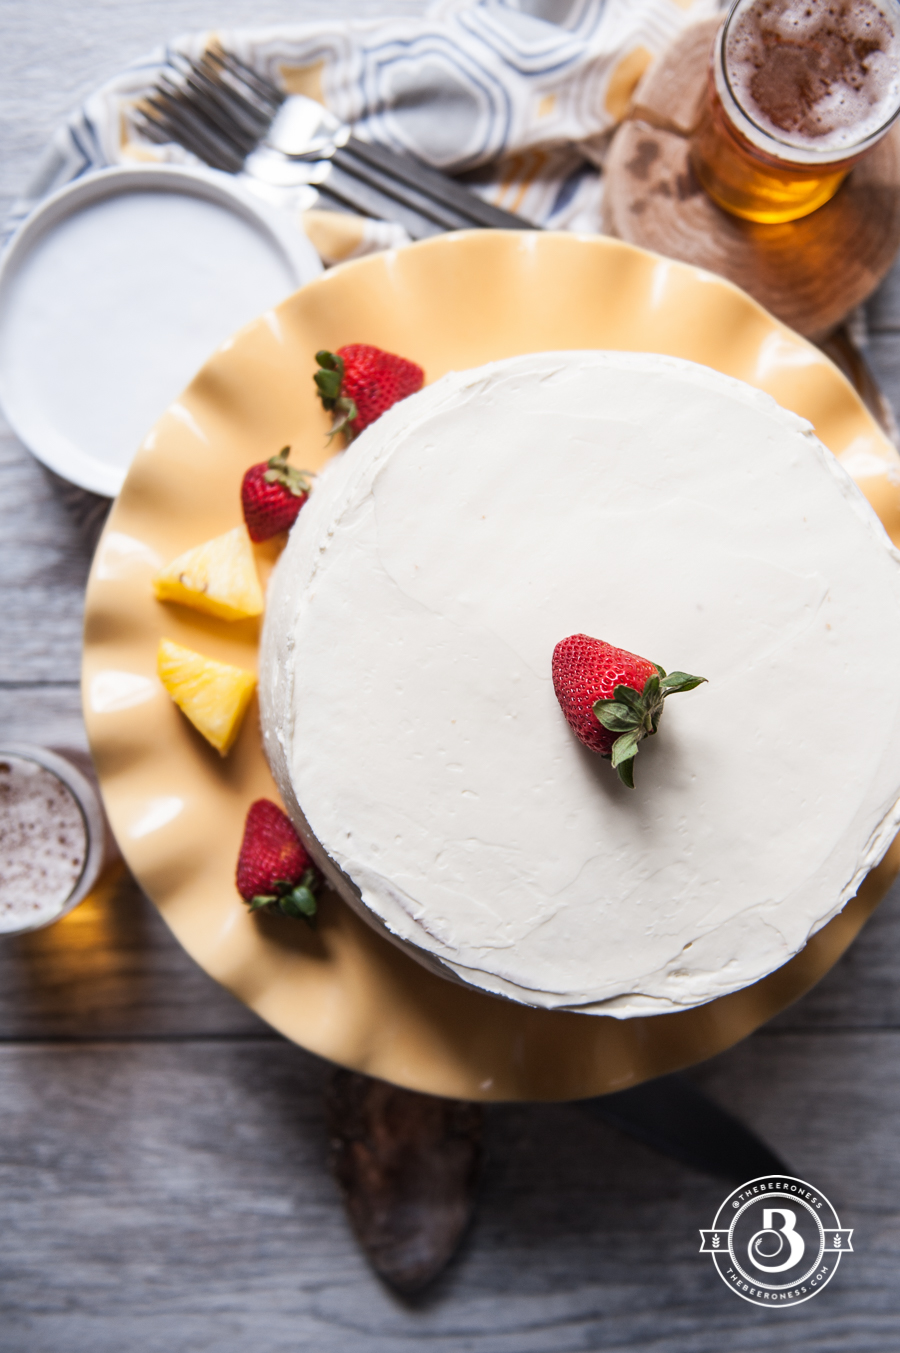 Strawberry Pineapple Pale Ale Cake with Whipped Cream Cheese Frosting. So moist and delicious with my FAVORITE frosting ever.